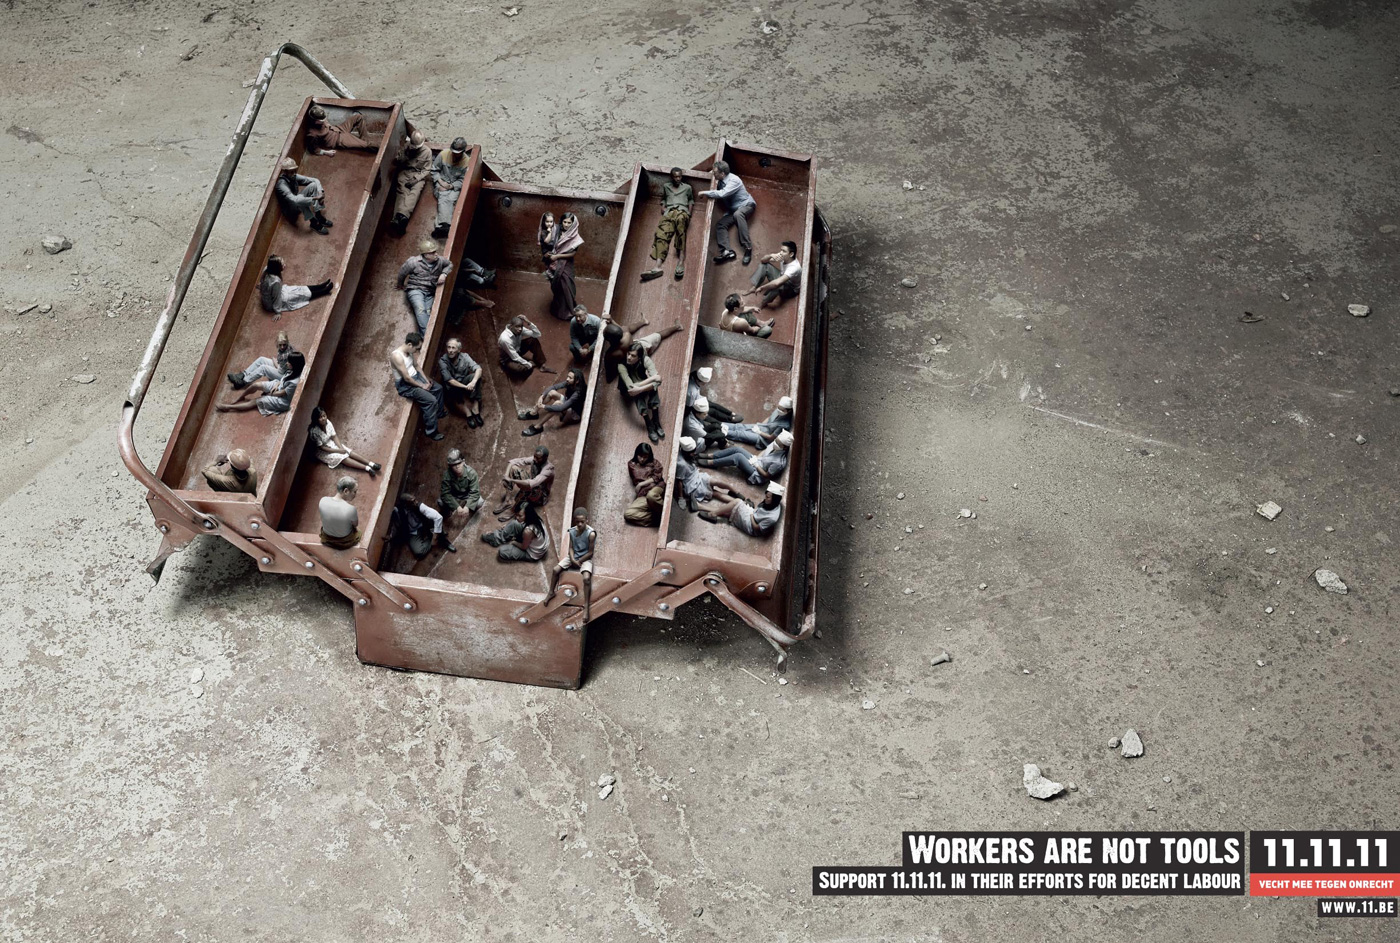 45 Most Powerful Social Issue Ads That Makes You Think